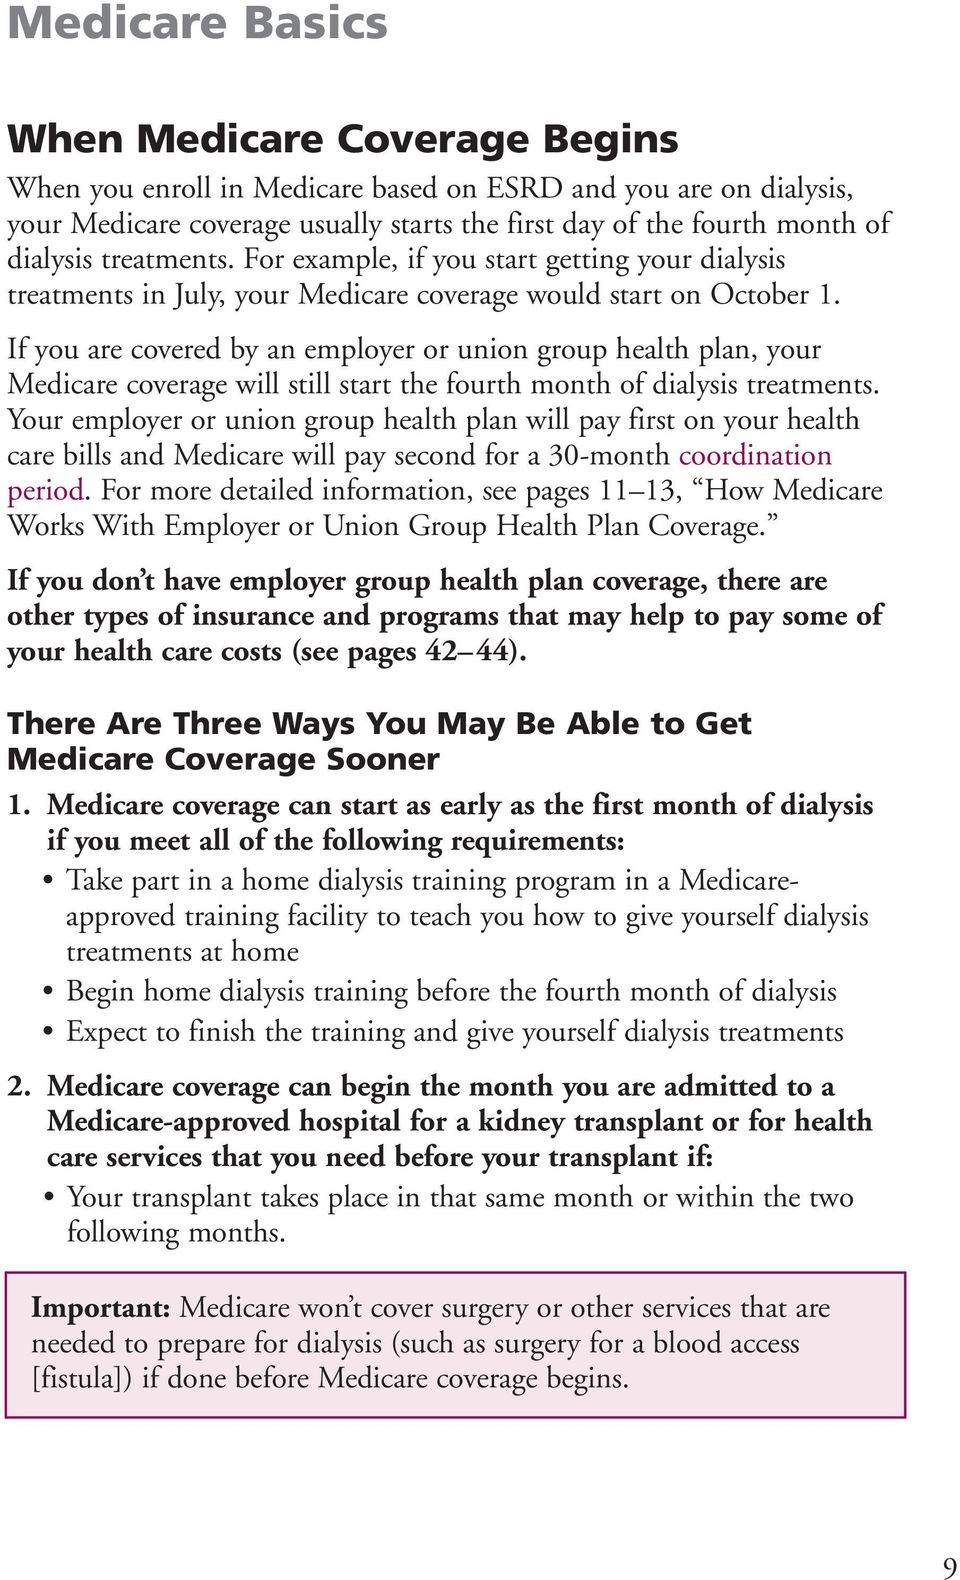 If you are covered by an employer or union group health plan, your Medicare coverage will still start the fourth month of dialysis treatments.